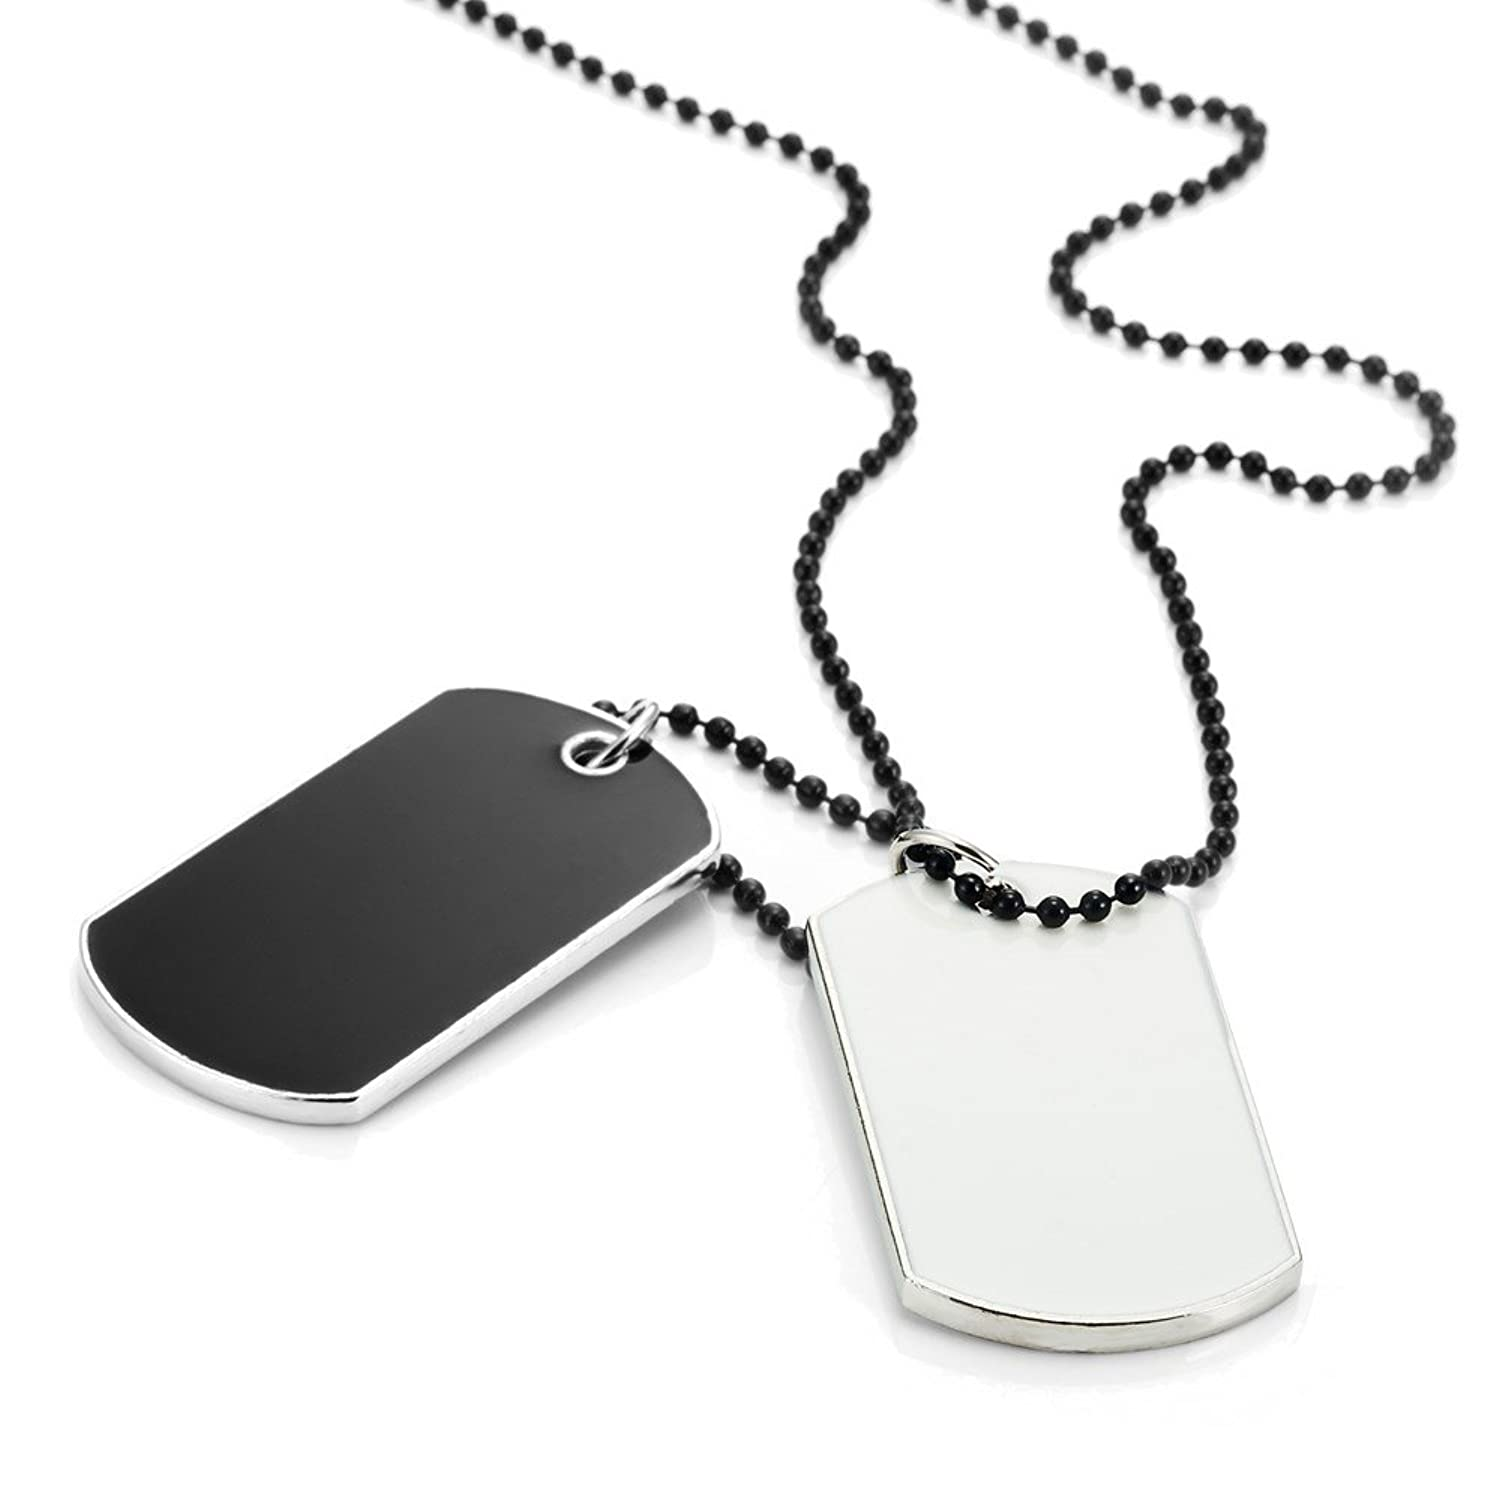 Army style 2pcs dog tag pendant mens necklace chain with branded army style 2pcs dog tag pendant mens necklace chain with branded gift box amazon mozeypictures Gallery